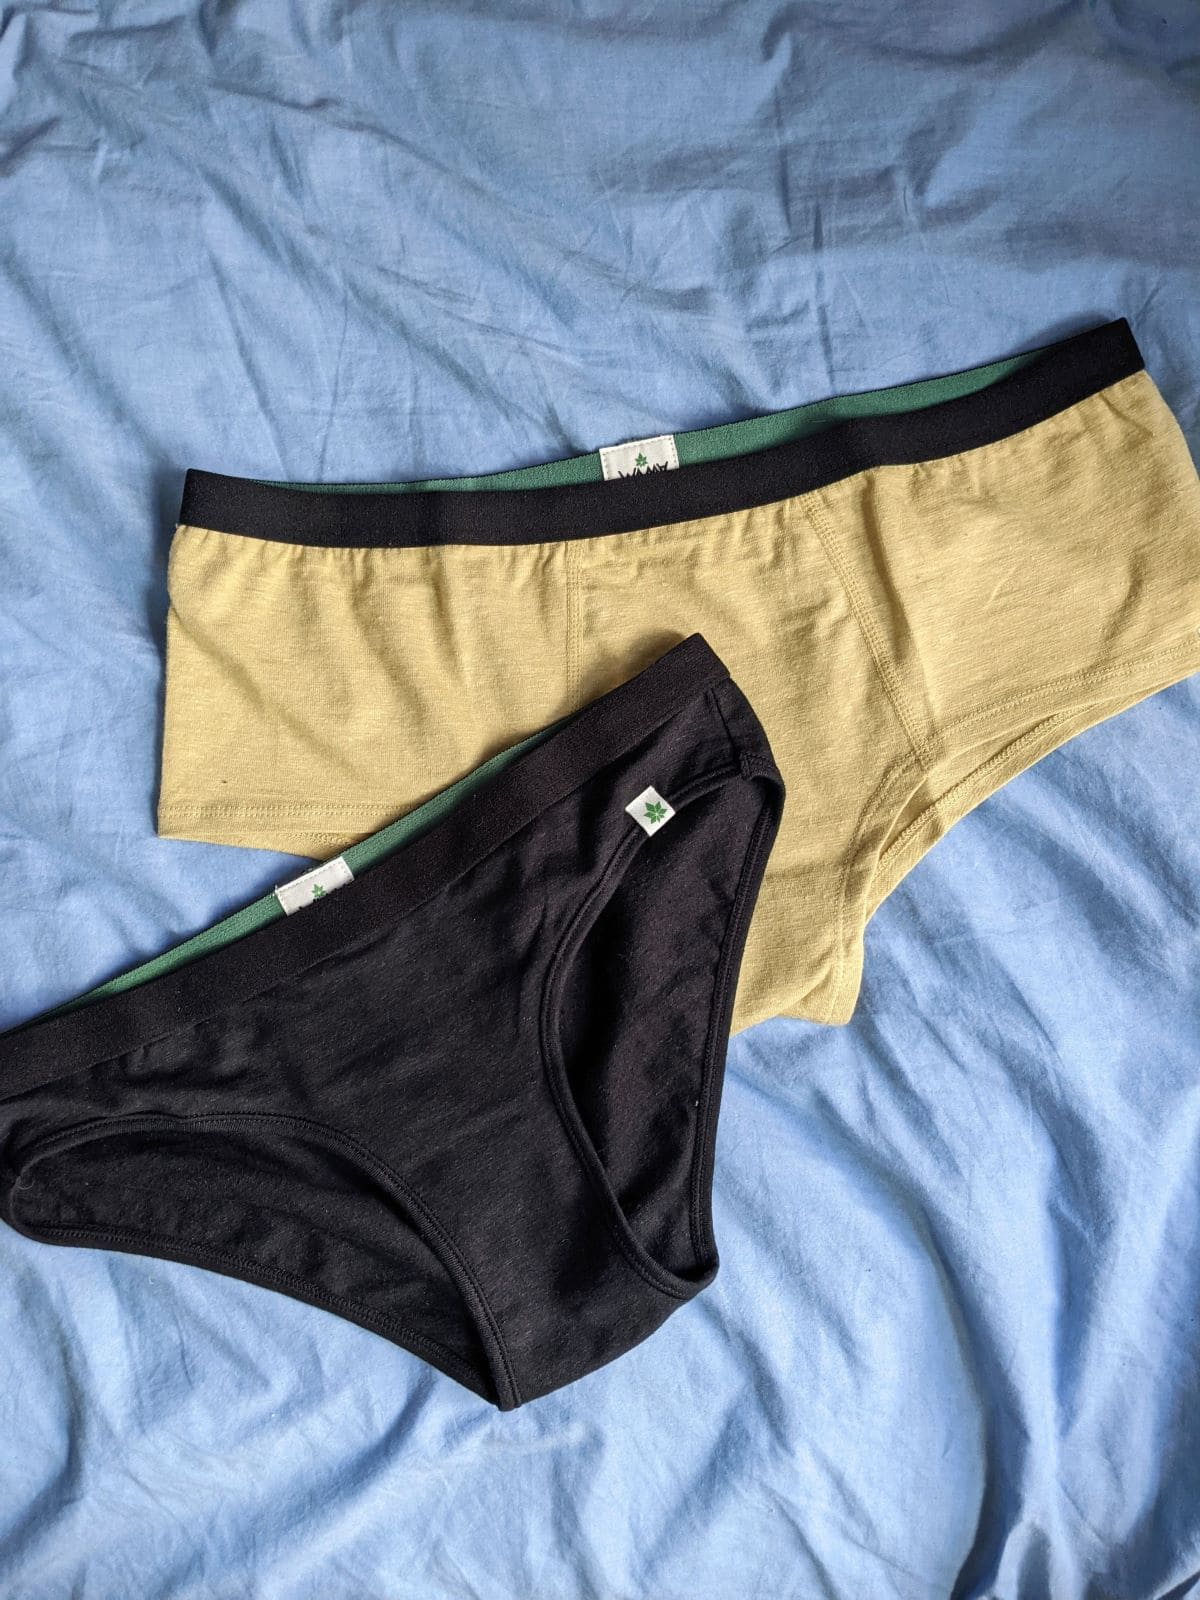 black brief on top of yellow boyshort on blue sheets